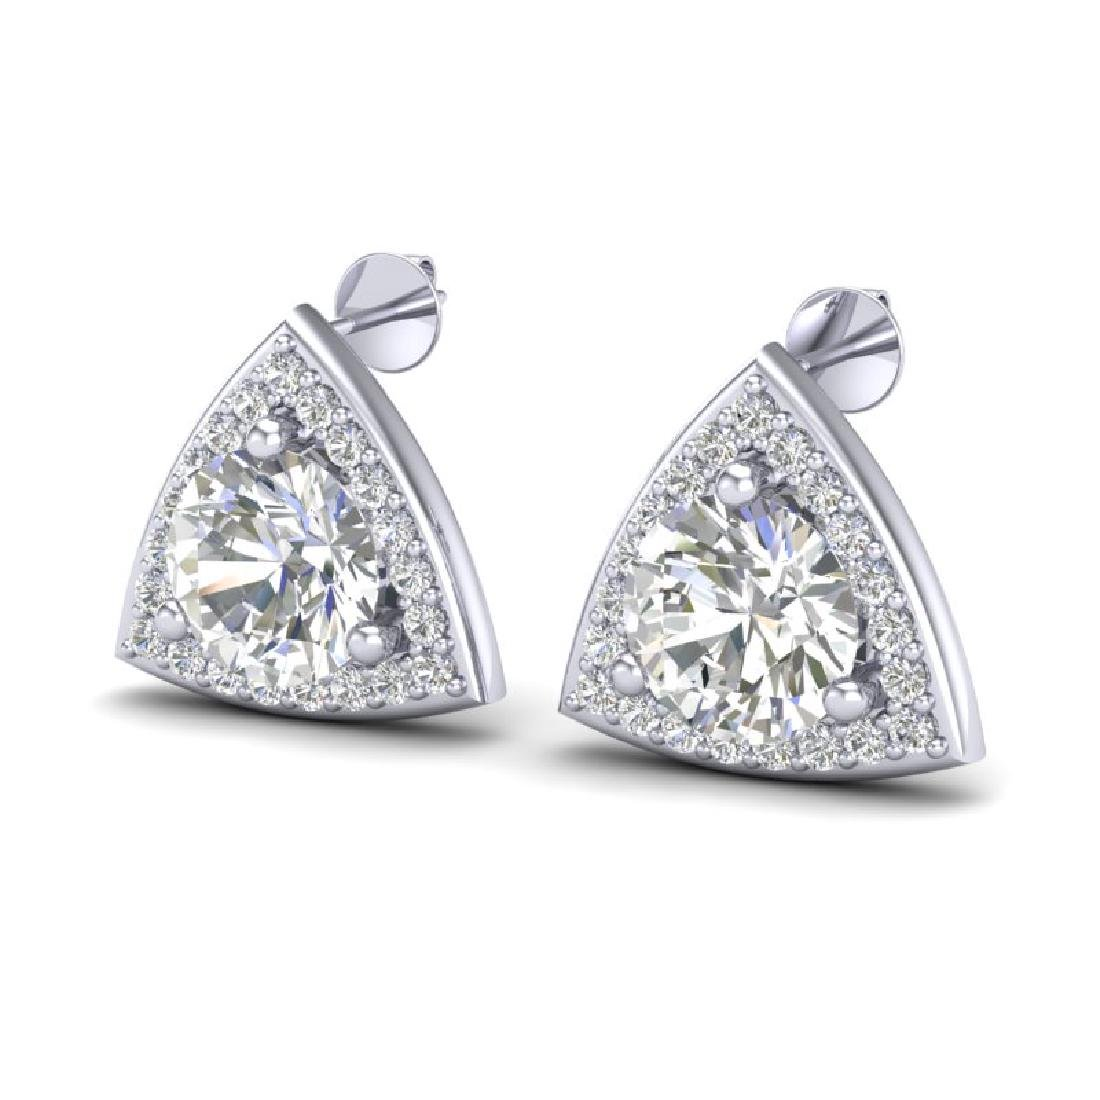 3 CTW VS/SI Diamond Stud Earrings 18K White Gold